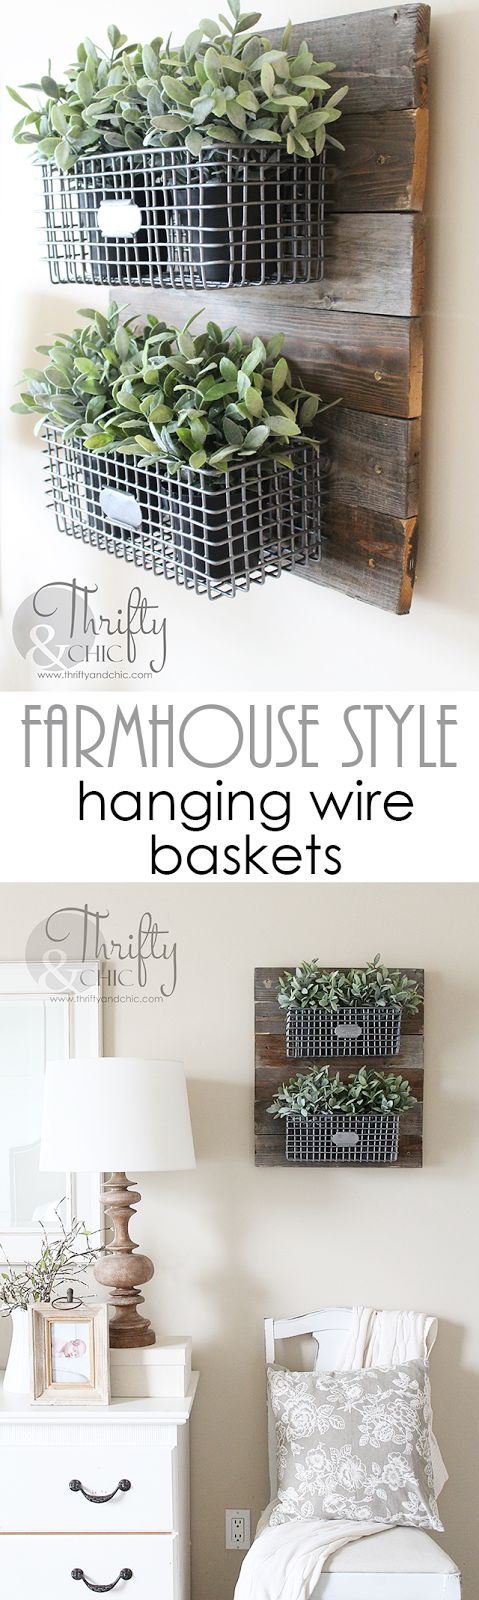 DIY Farmhouse Style Hanging Wire Baskets On Reclaimed Wood. Great way to infuse your house with fixer upper or farmhouse style! (Top Design Building)